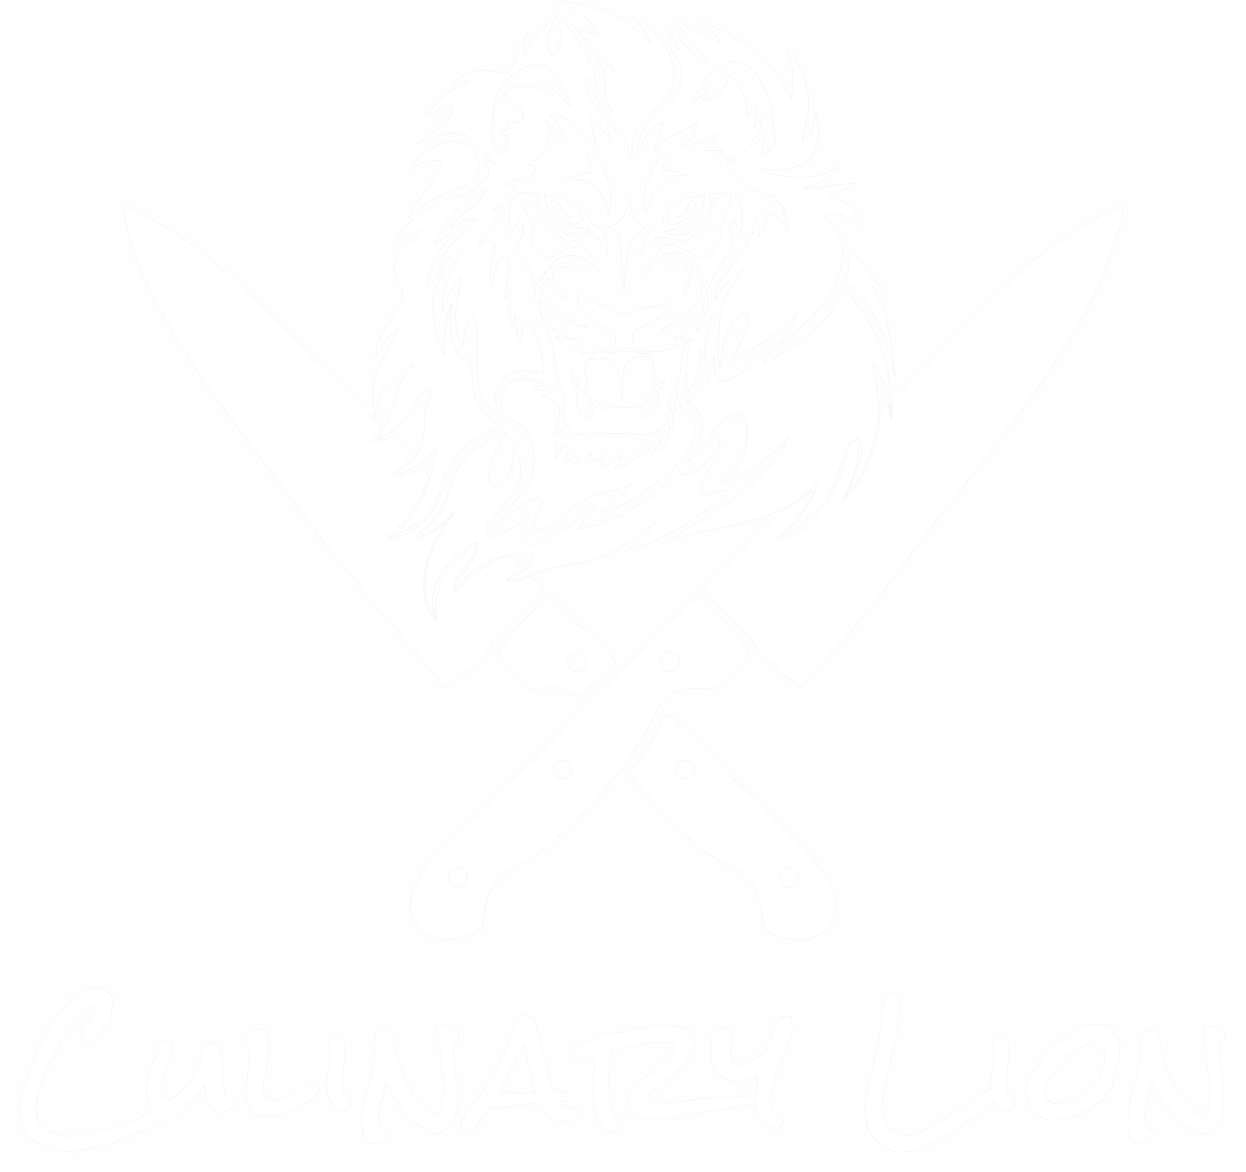 Culinary lion - lion's head with crossed knives